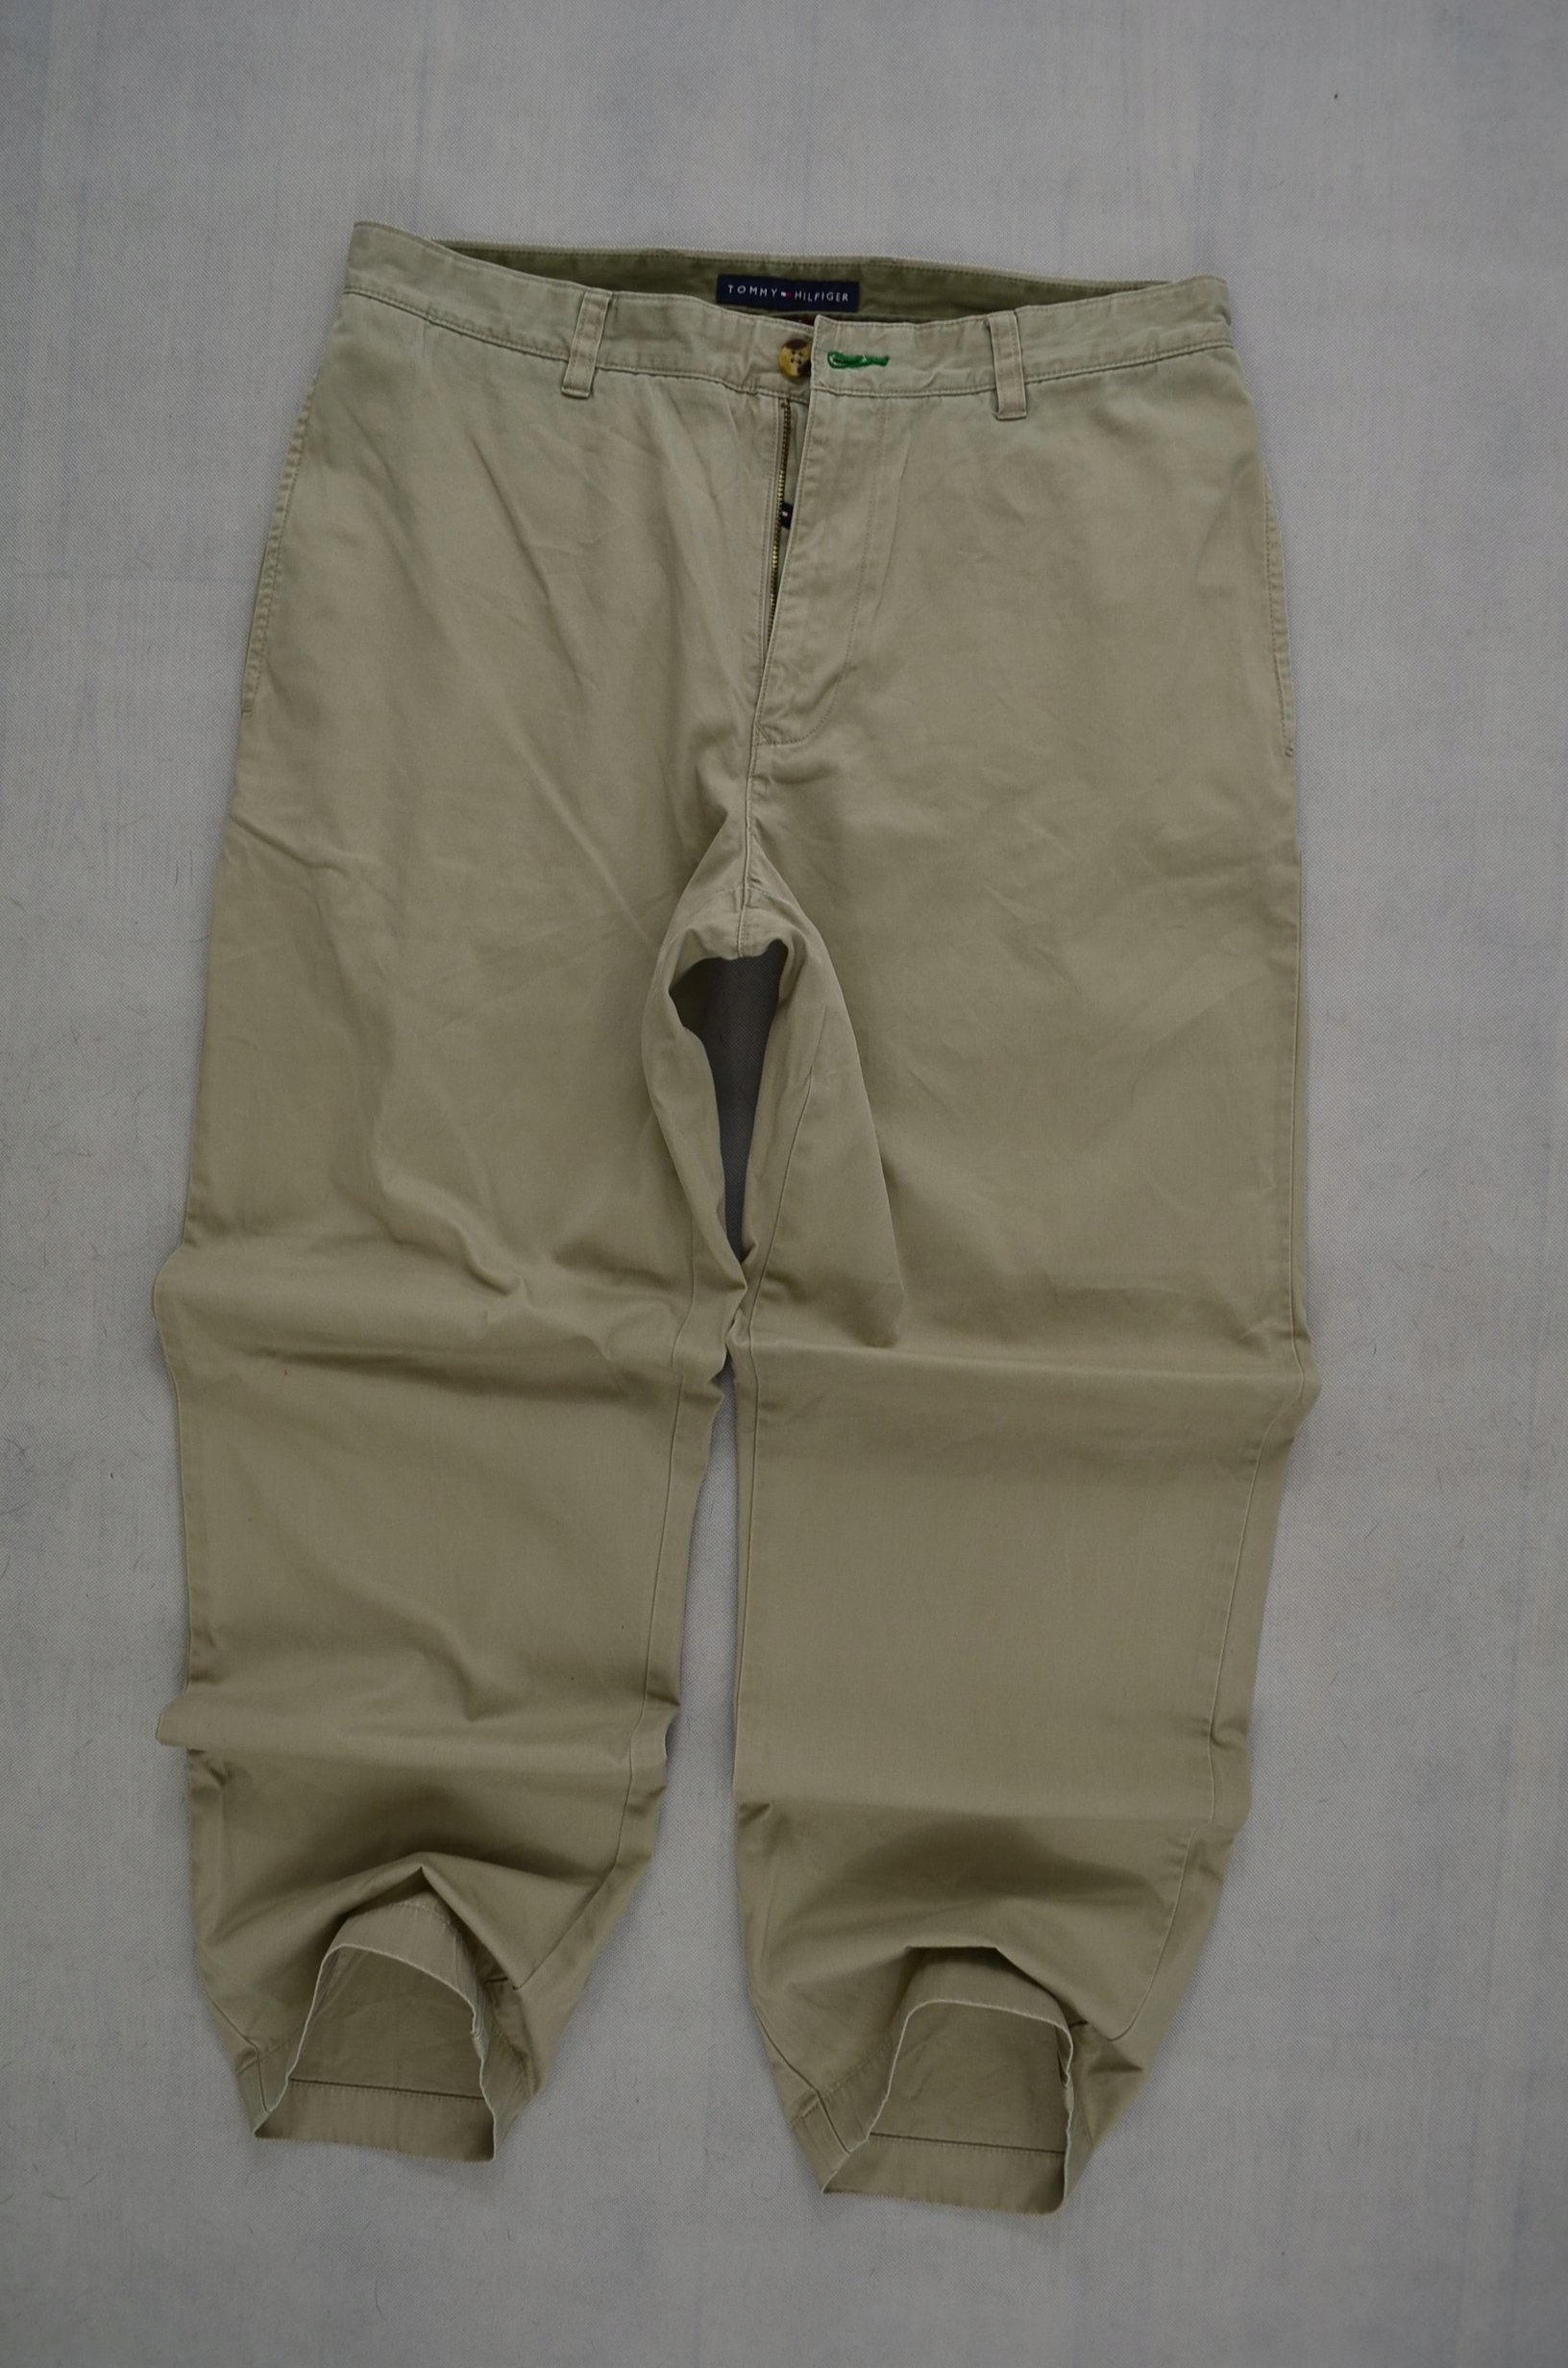 TOMMY HILFIGER SPODNIE CHINO LOGO TH 86 cm *33/30*